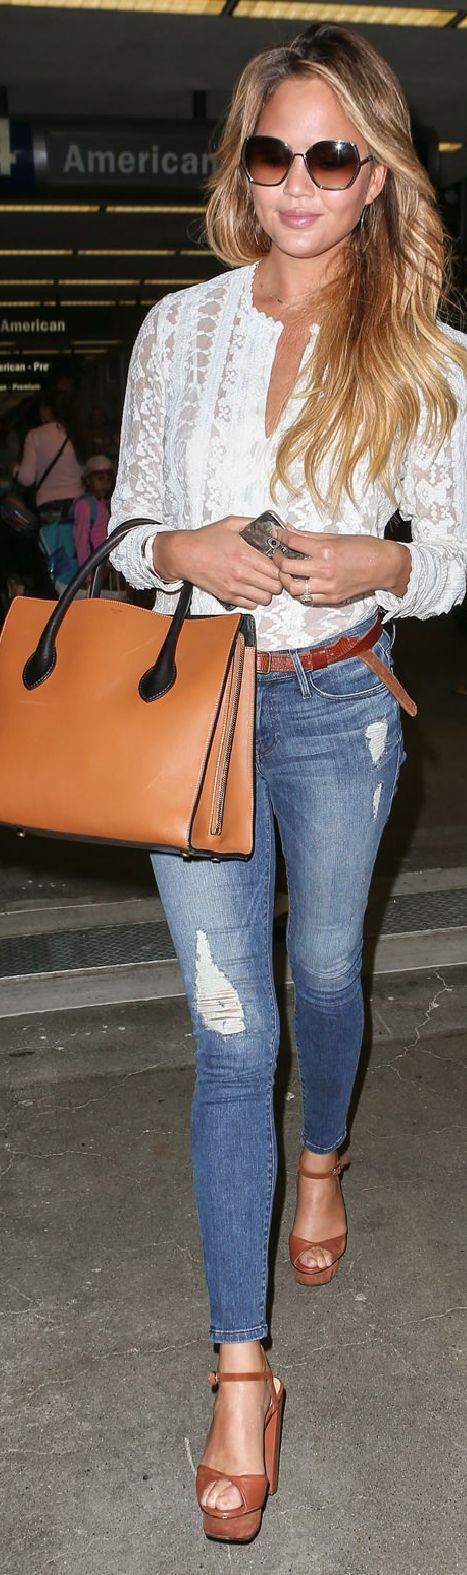 Chrissy Teigen at LAX in a Rebecca Taylor top paired with skinny jeans, a Céline brown leather tote, and Chloé sunglasses.